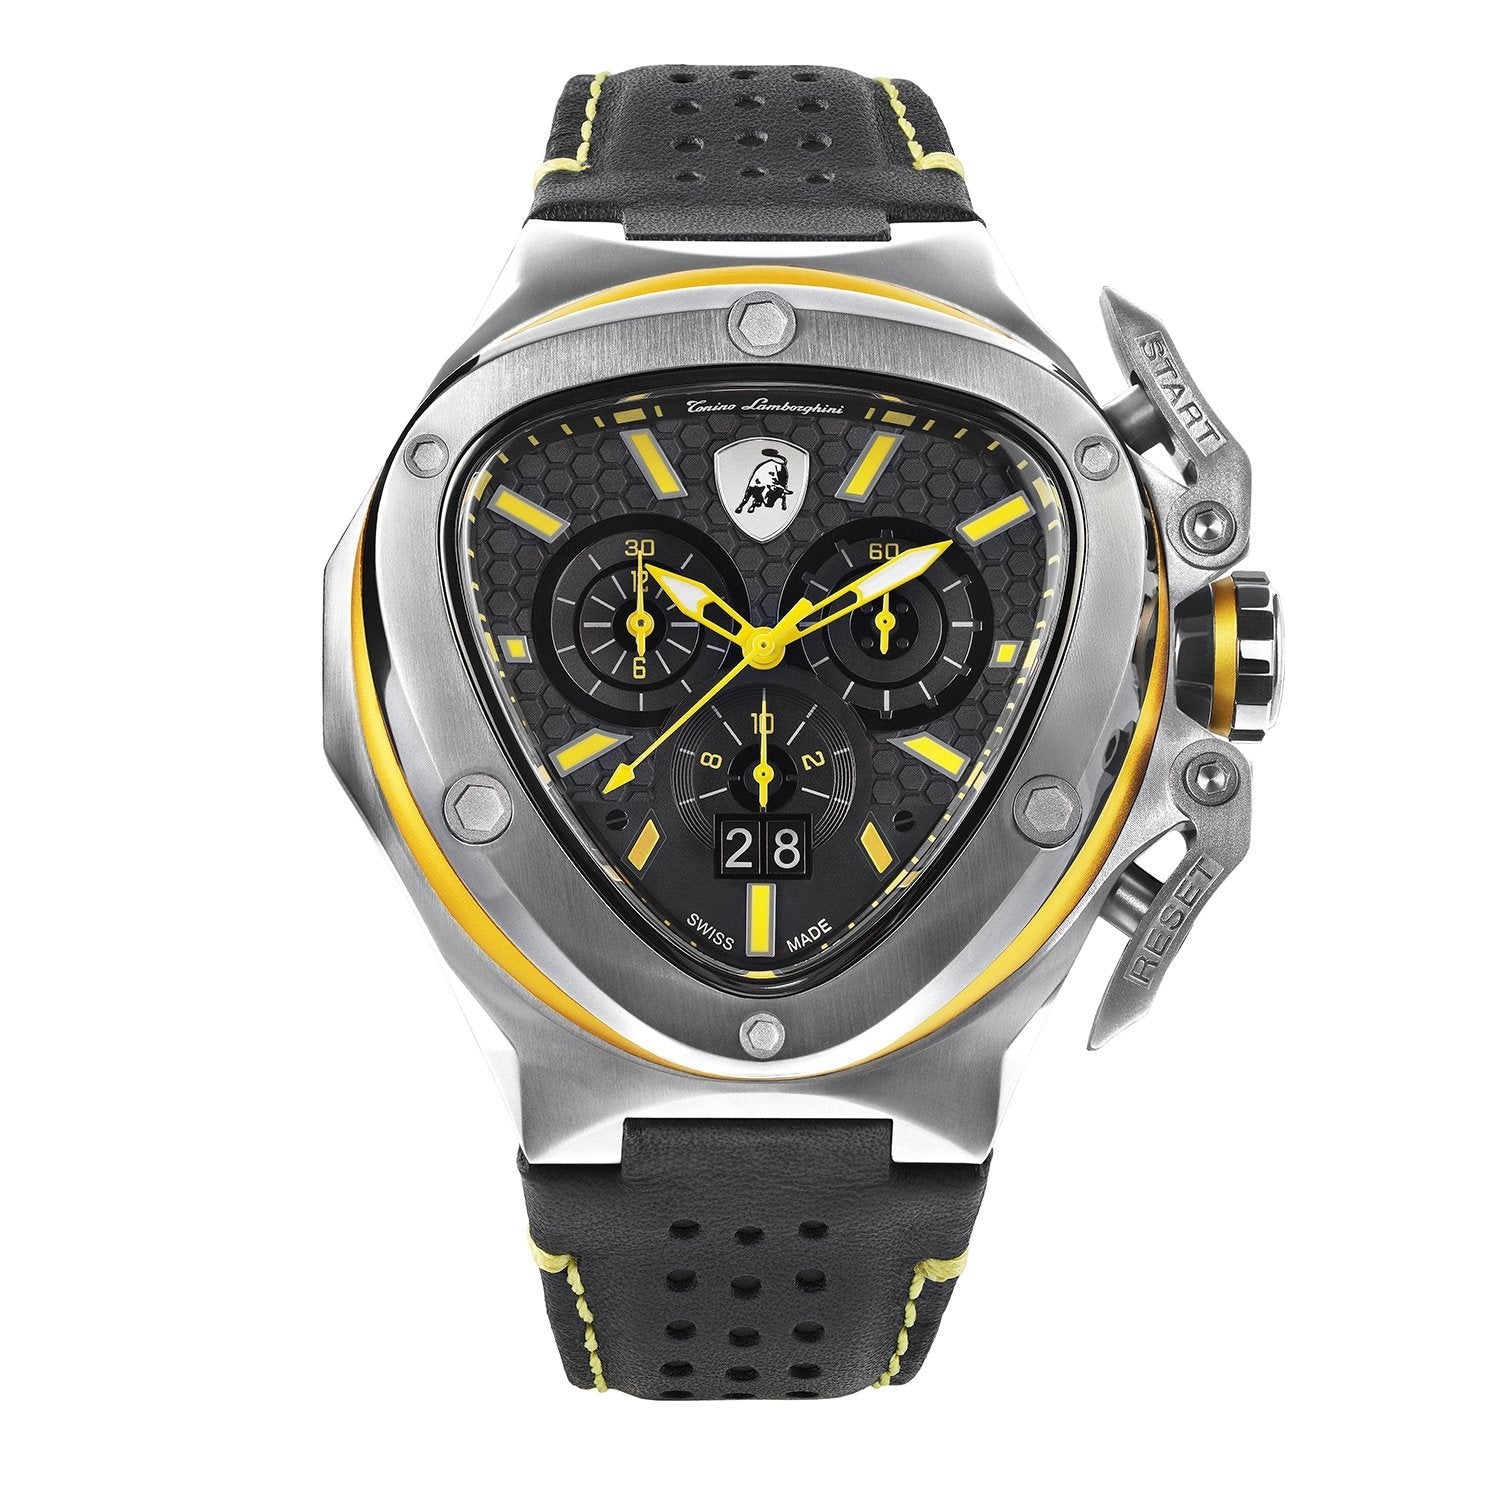 Tonino Lamborghini Spyder X Chronograph Date Steel Yellow - Watches & Crystals